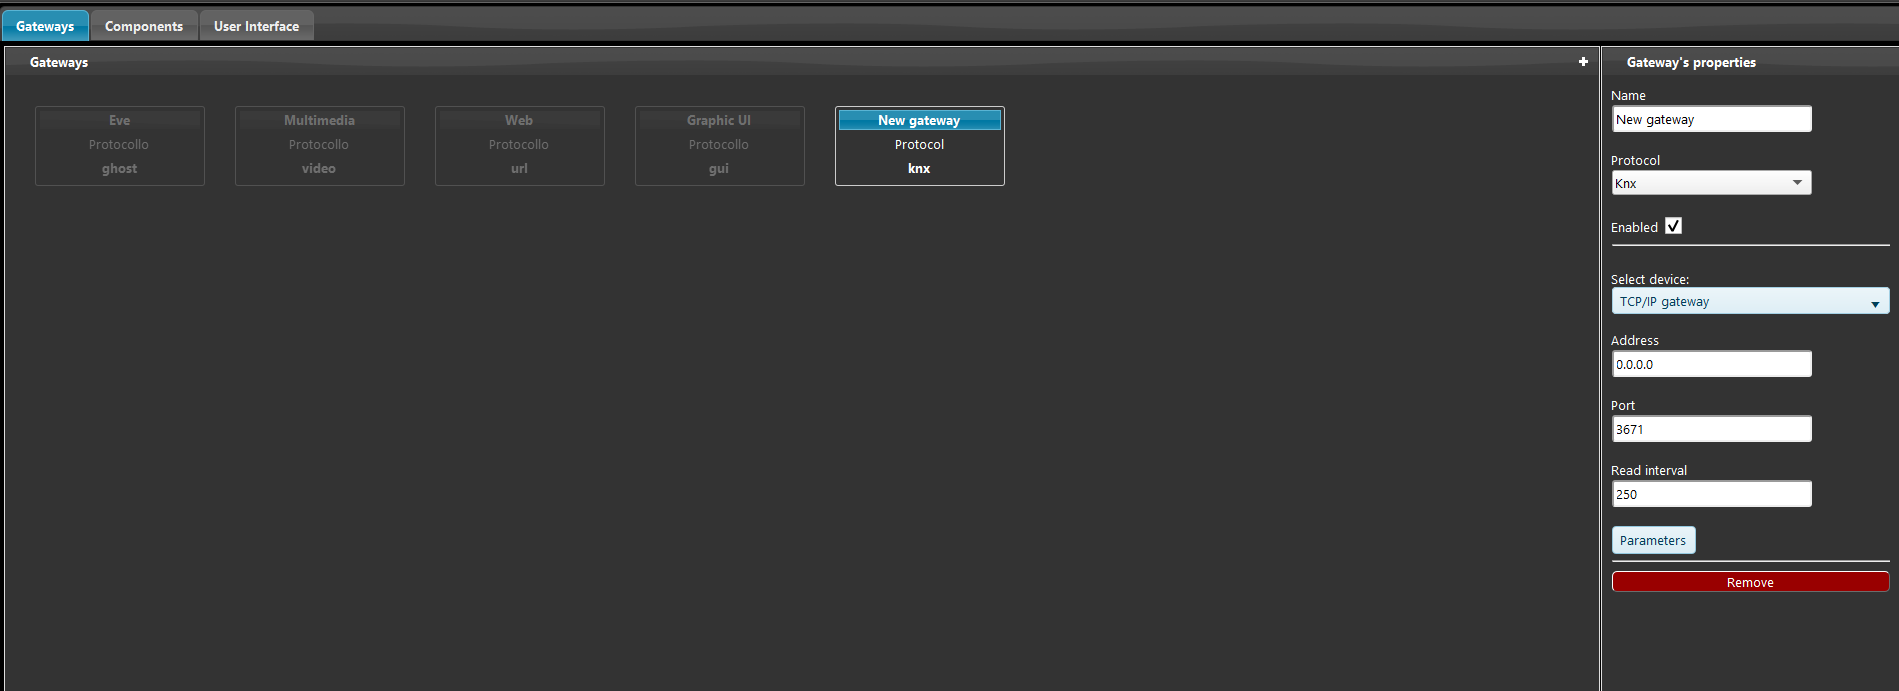 How the gateway's properties are shown inside the Home automation configuration software EVE Manager